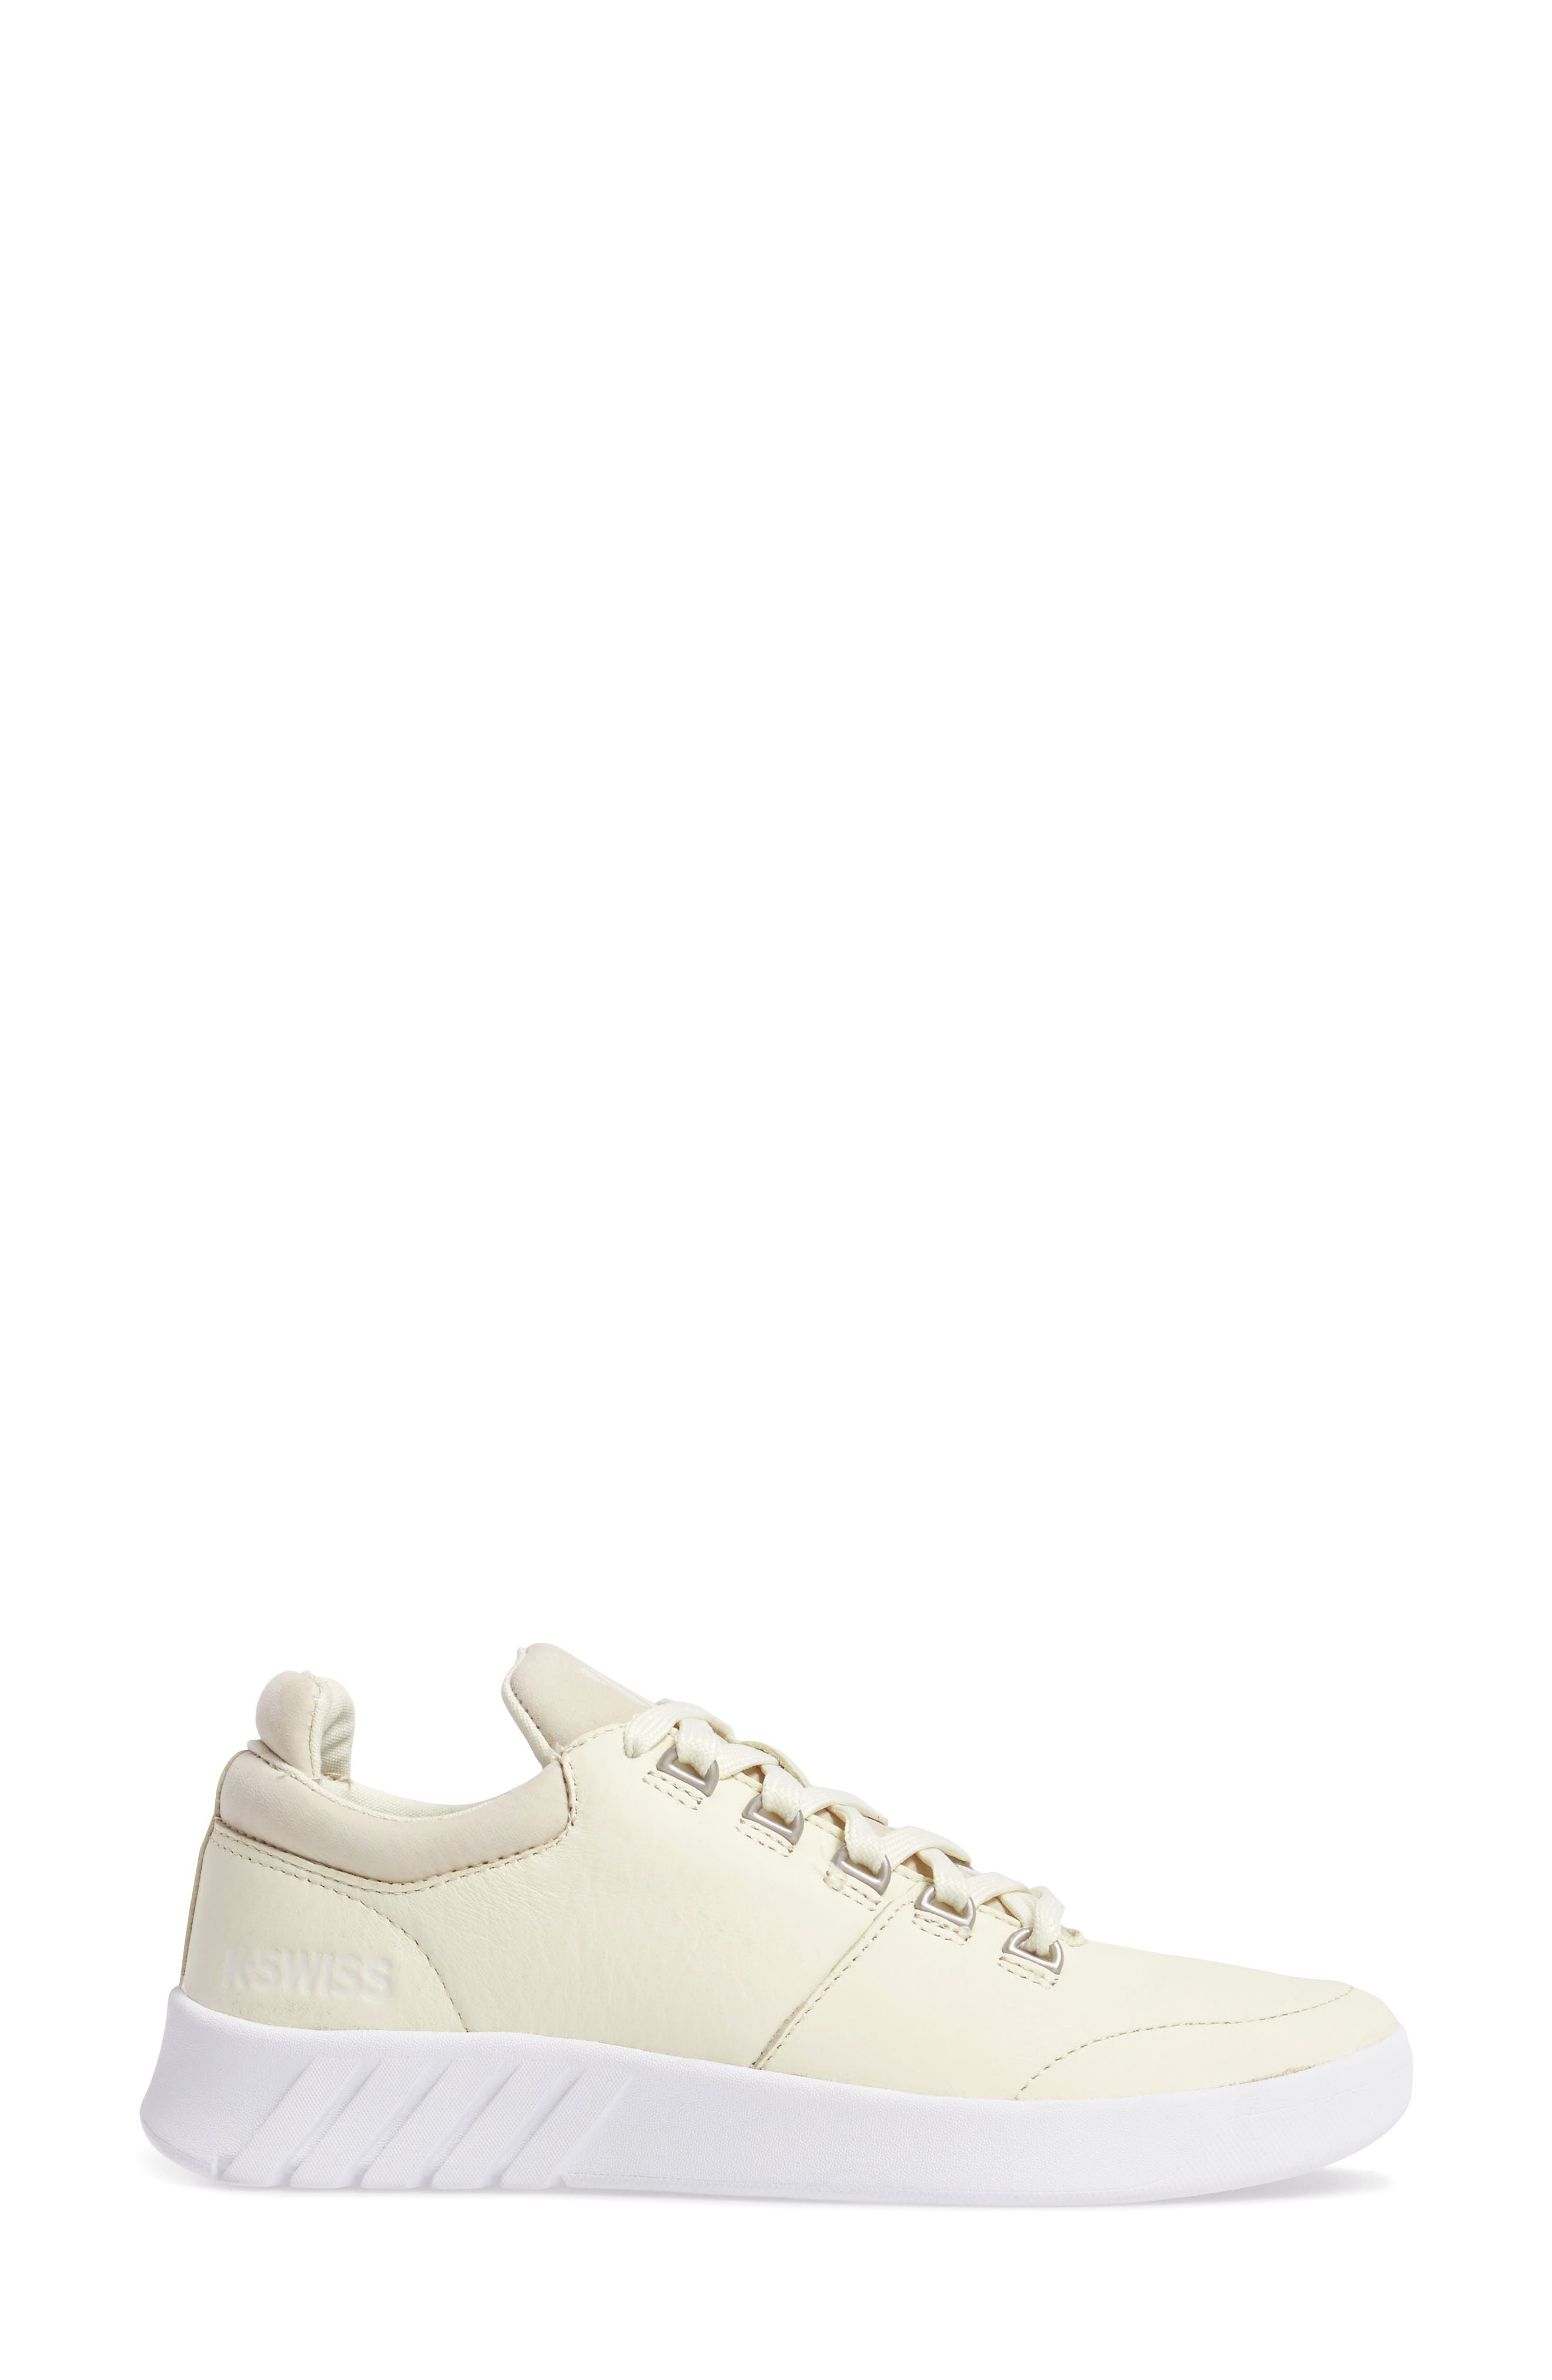 Aero Trainer Sneaker,                             Alternate thumbnail 3, color,                             VANILLA ICE/ WHITE